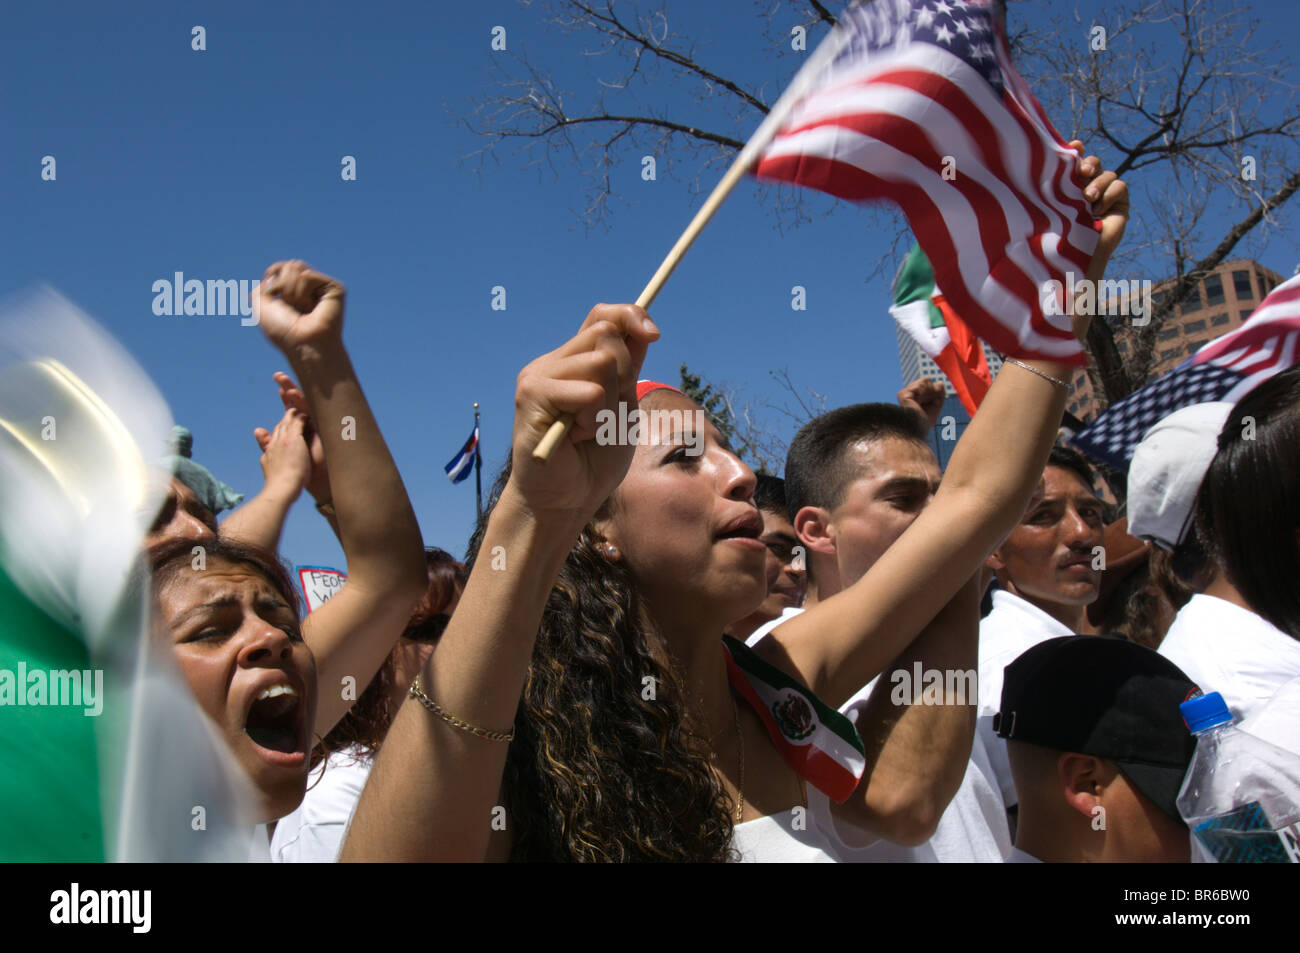 Demonstrators wave American flags and chant at a May Day rally for immigrant rights in Denver Colorado - Stock Image